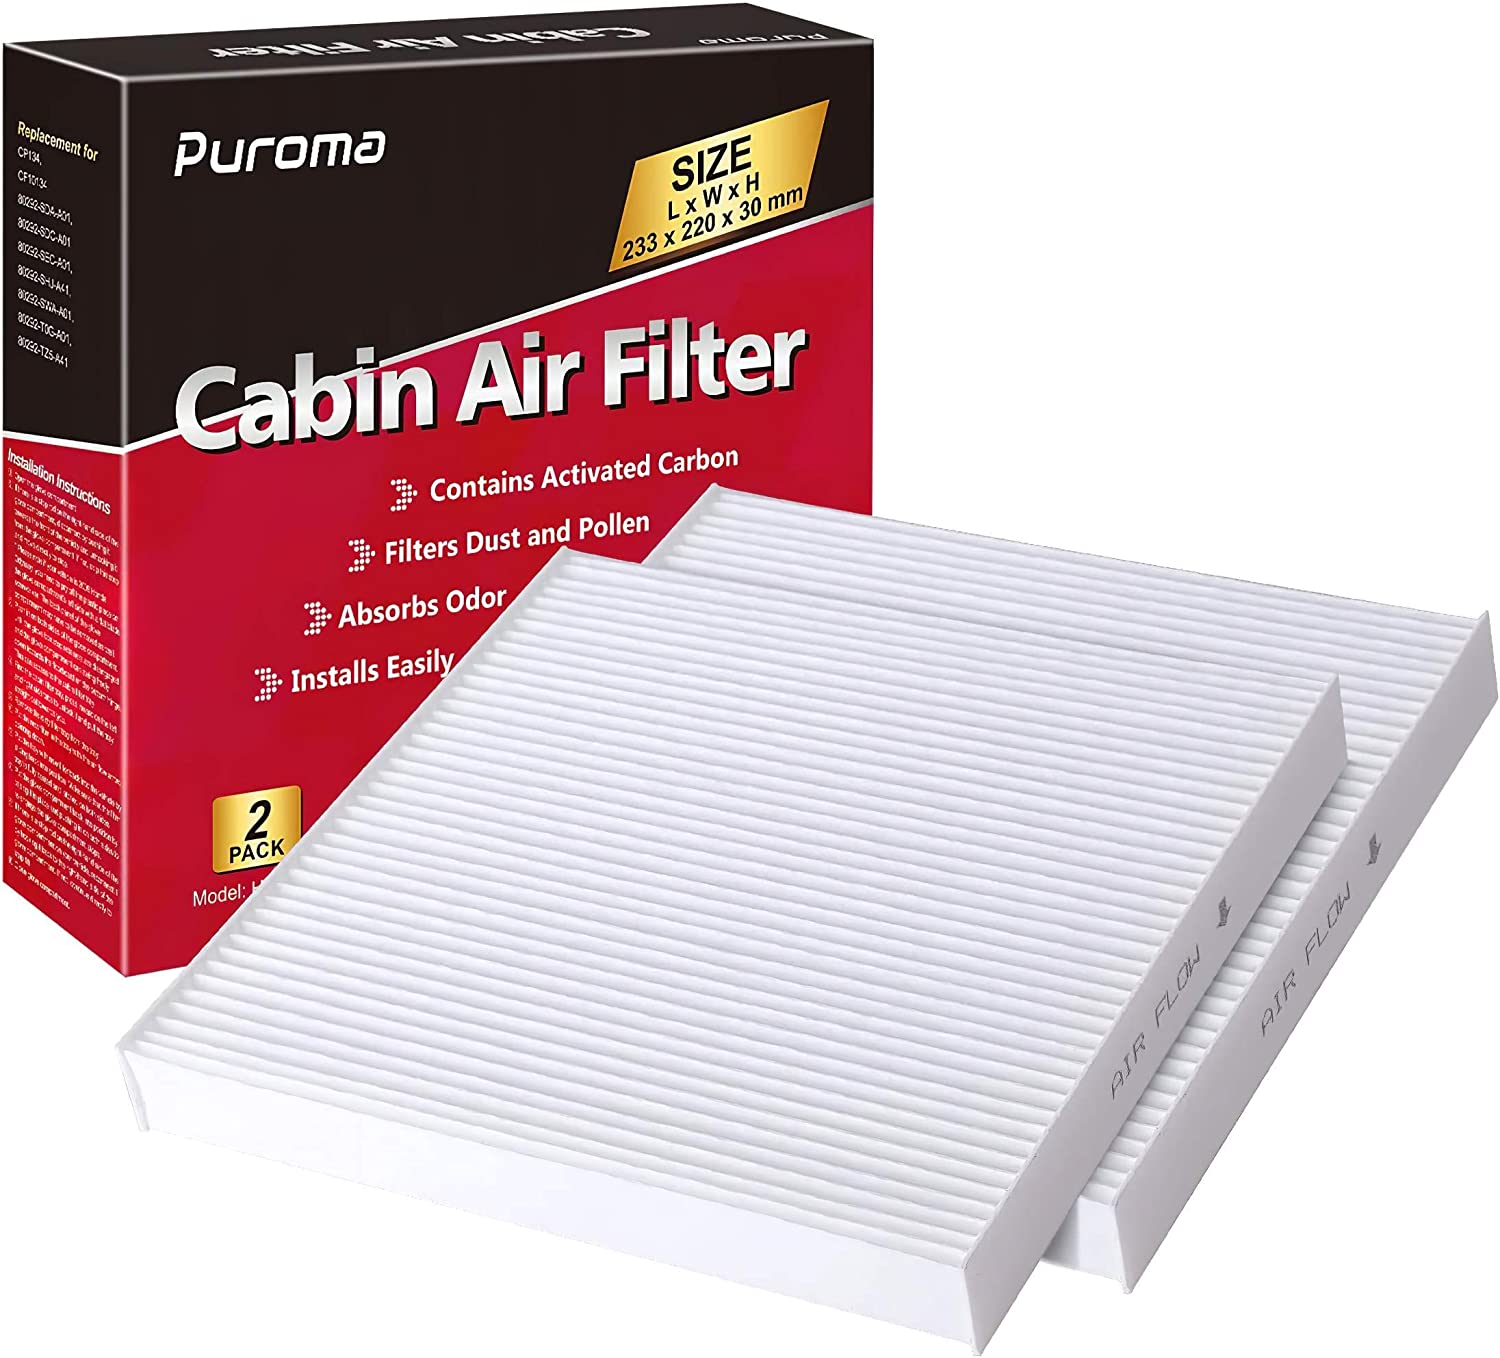 Puroma 2 Pack Cabin Air Filter with Multiple Fiber Layers Replacement for CP134, CF10134, Honda & Acura, Civic, CR-V, Odyssey, CSX, ILX, MDX, RDX